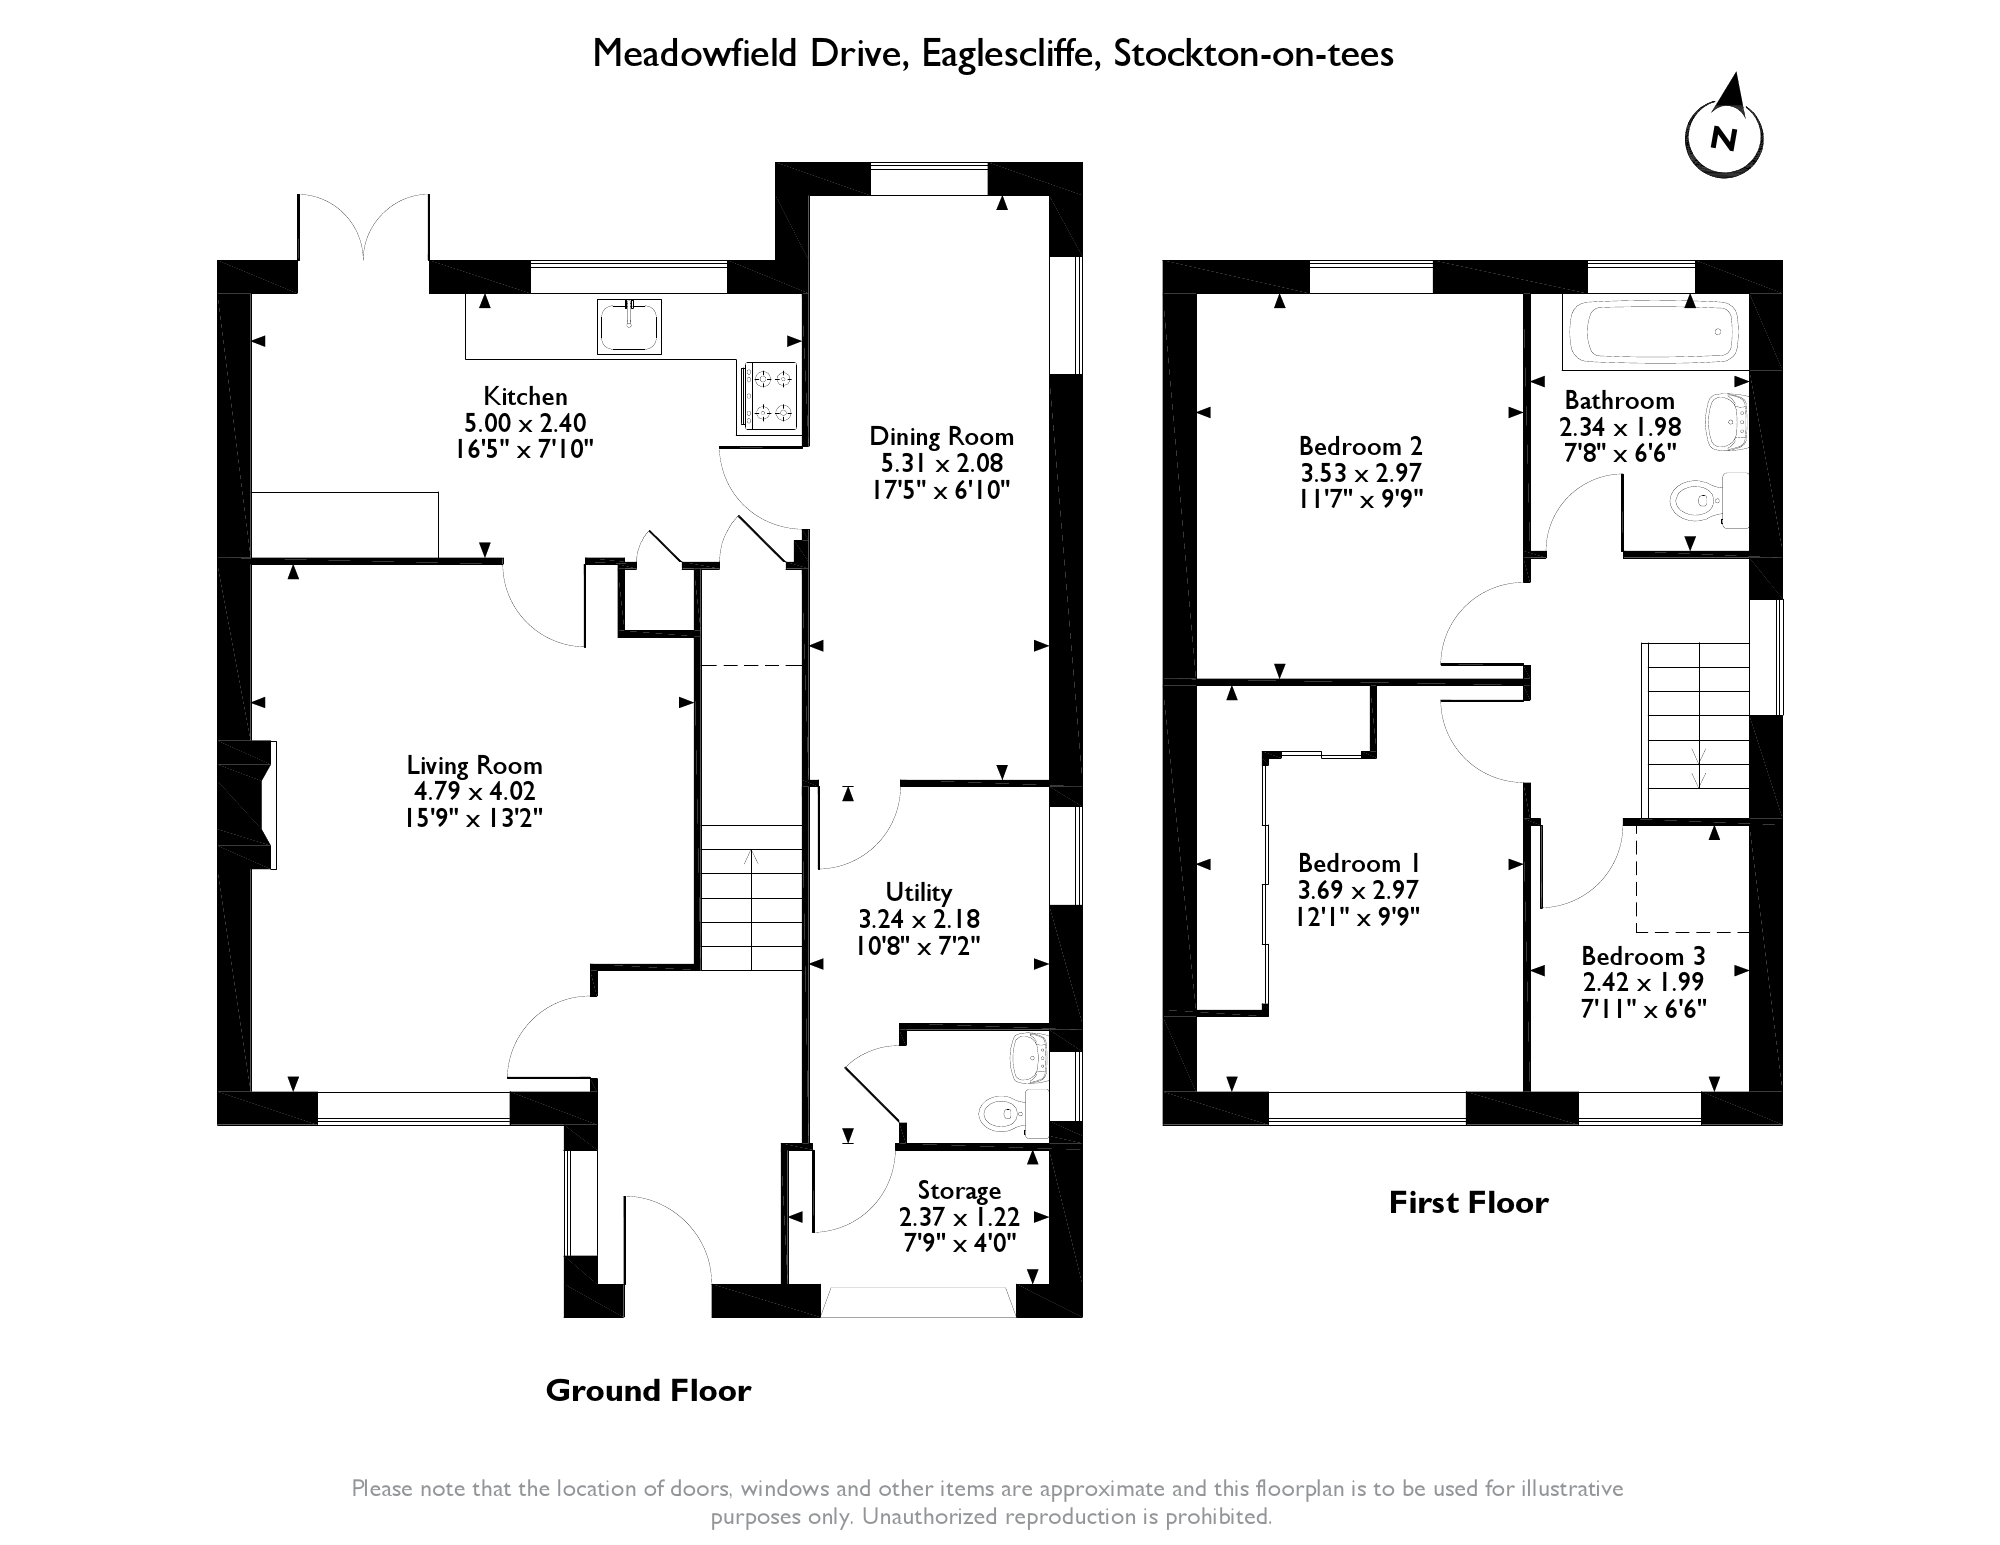 Meadowfield Drive, Eaglescliffe, TS16 floor plan